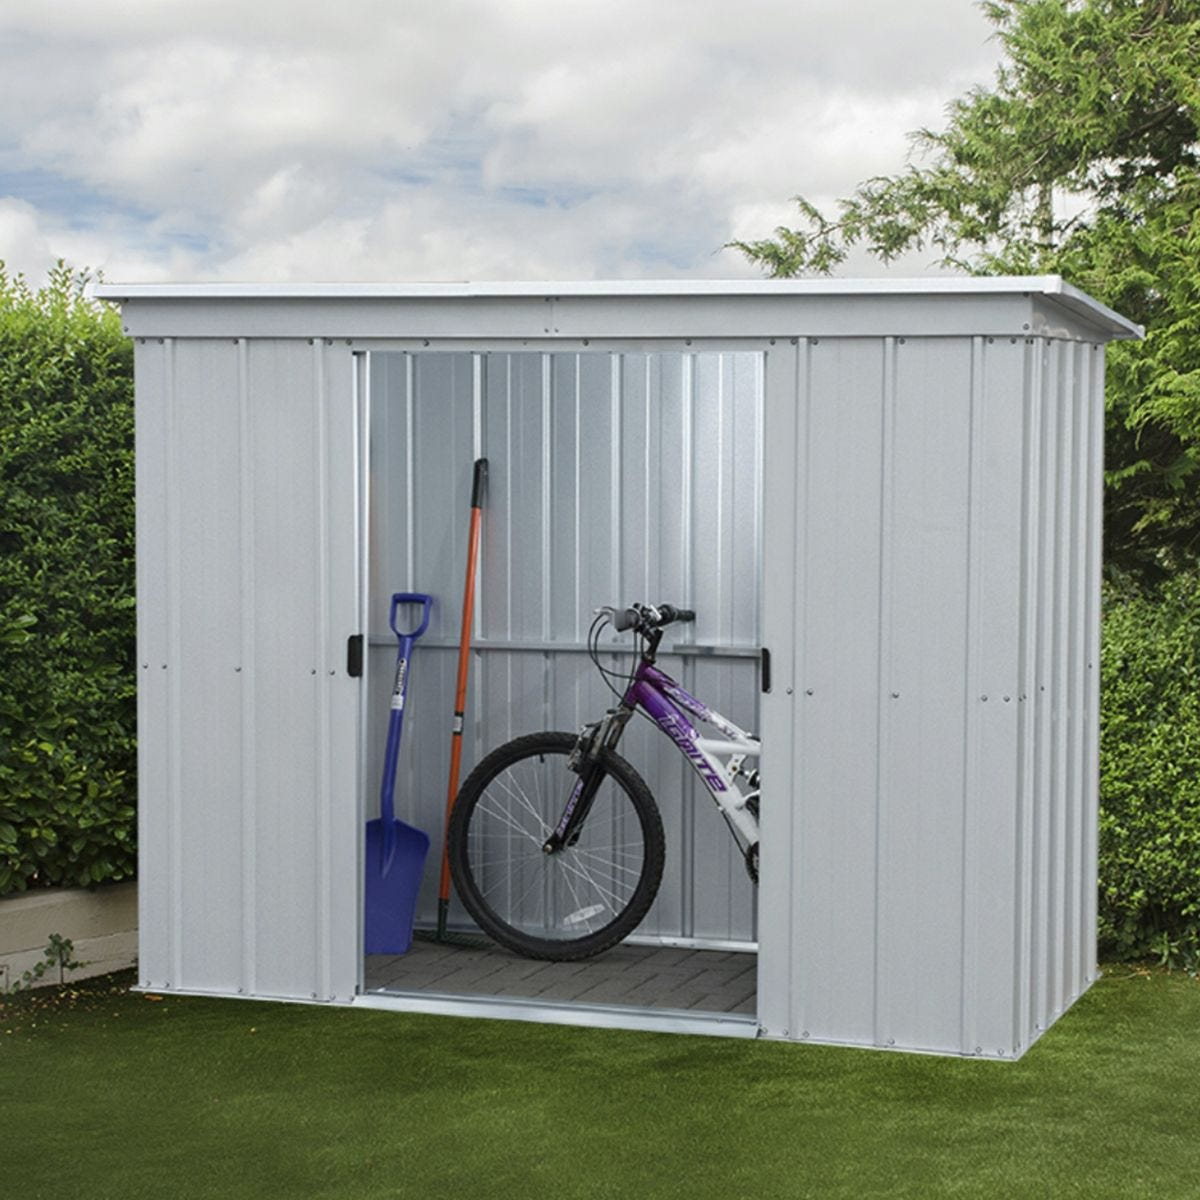 Yardmaster Store All No Floor Metal Pent Shed 6 x 4ft